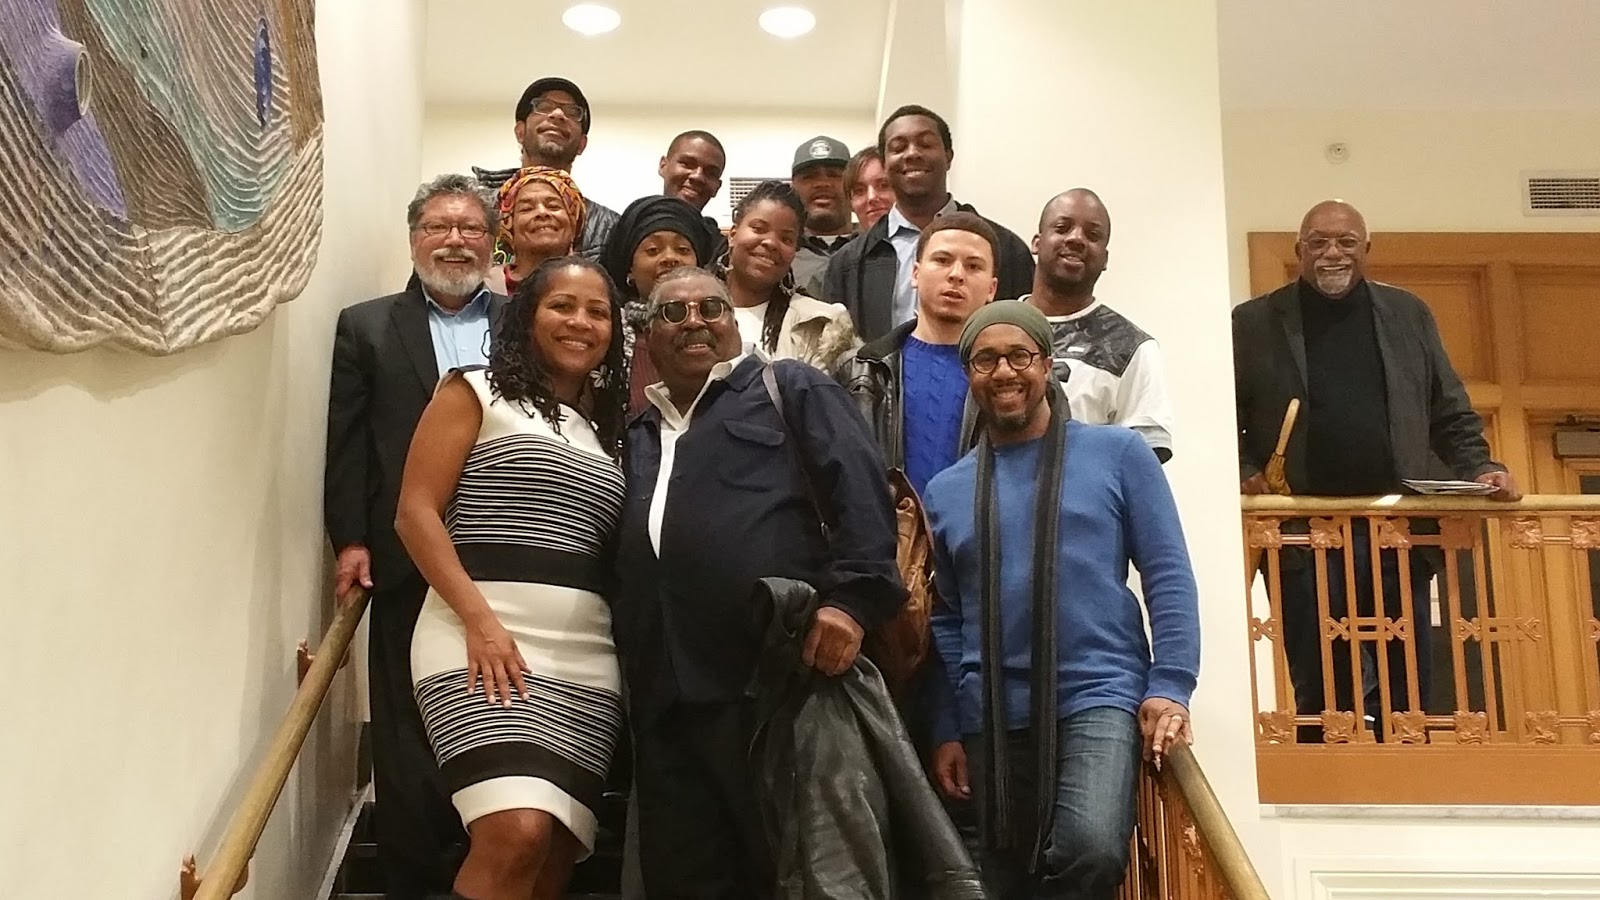 oakland city black singles Find meetups in oakland, california about black singles and meet people in your local community who share your interests.